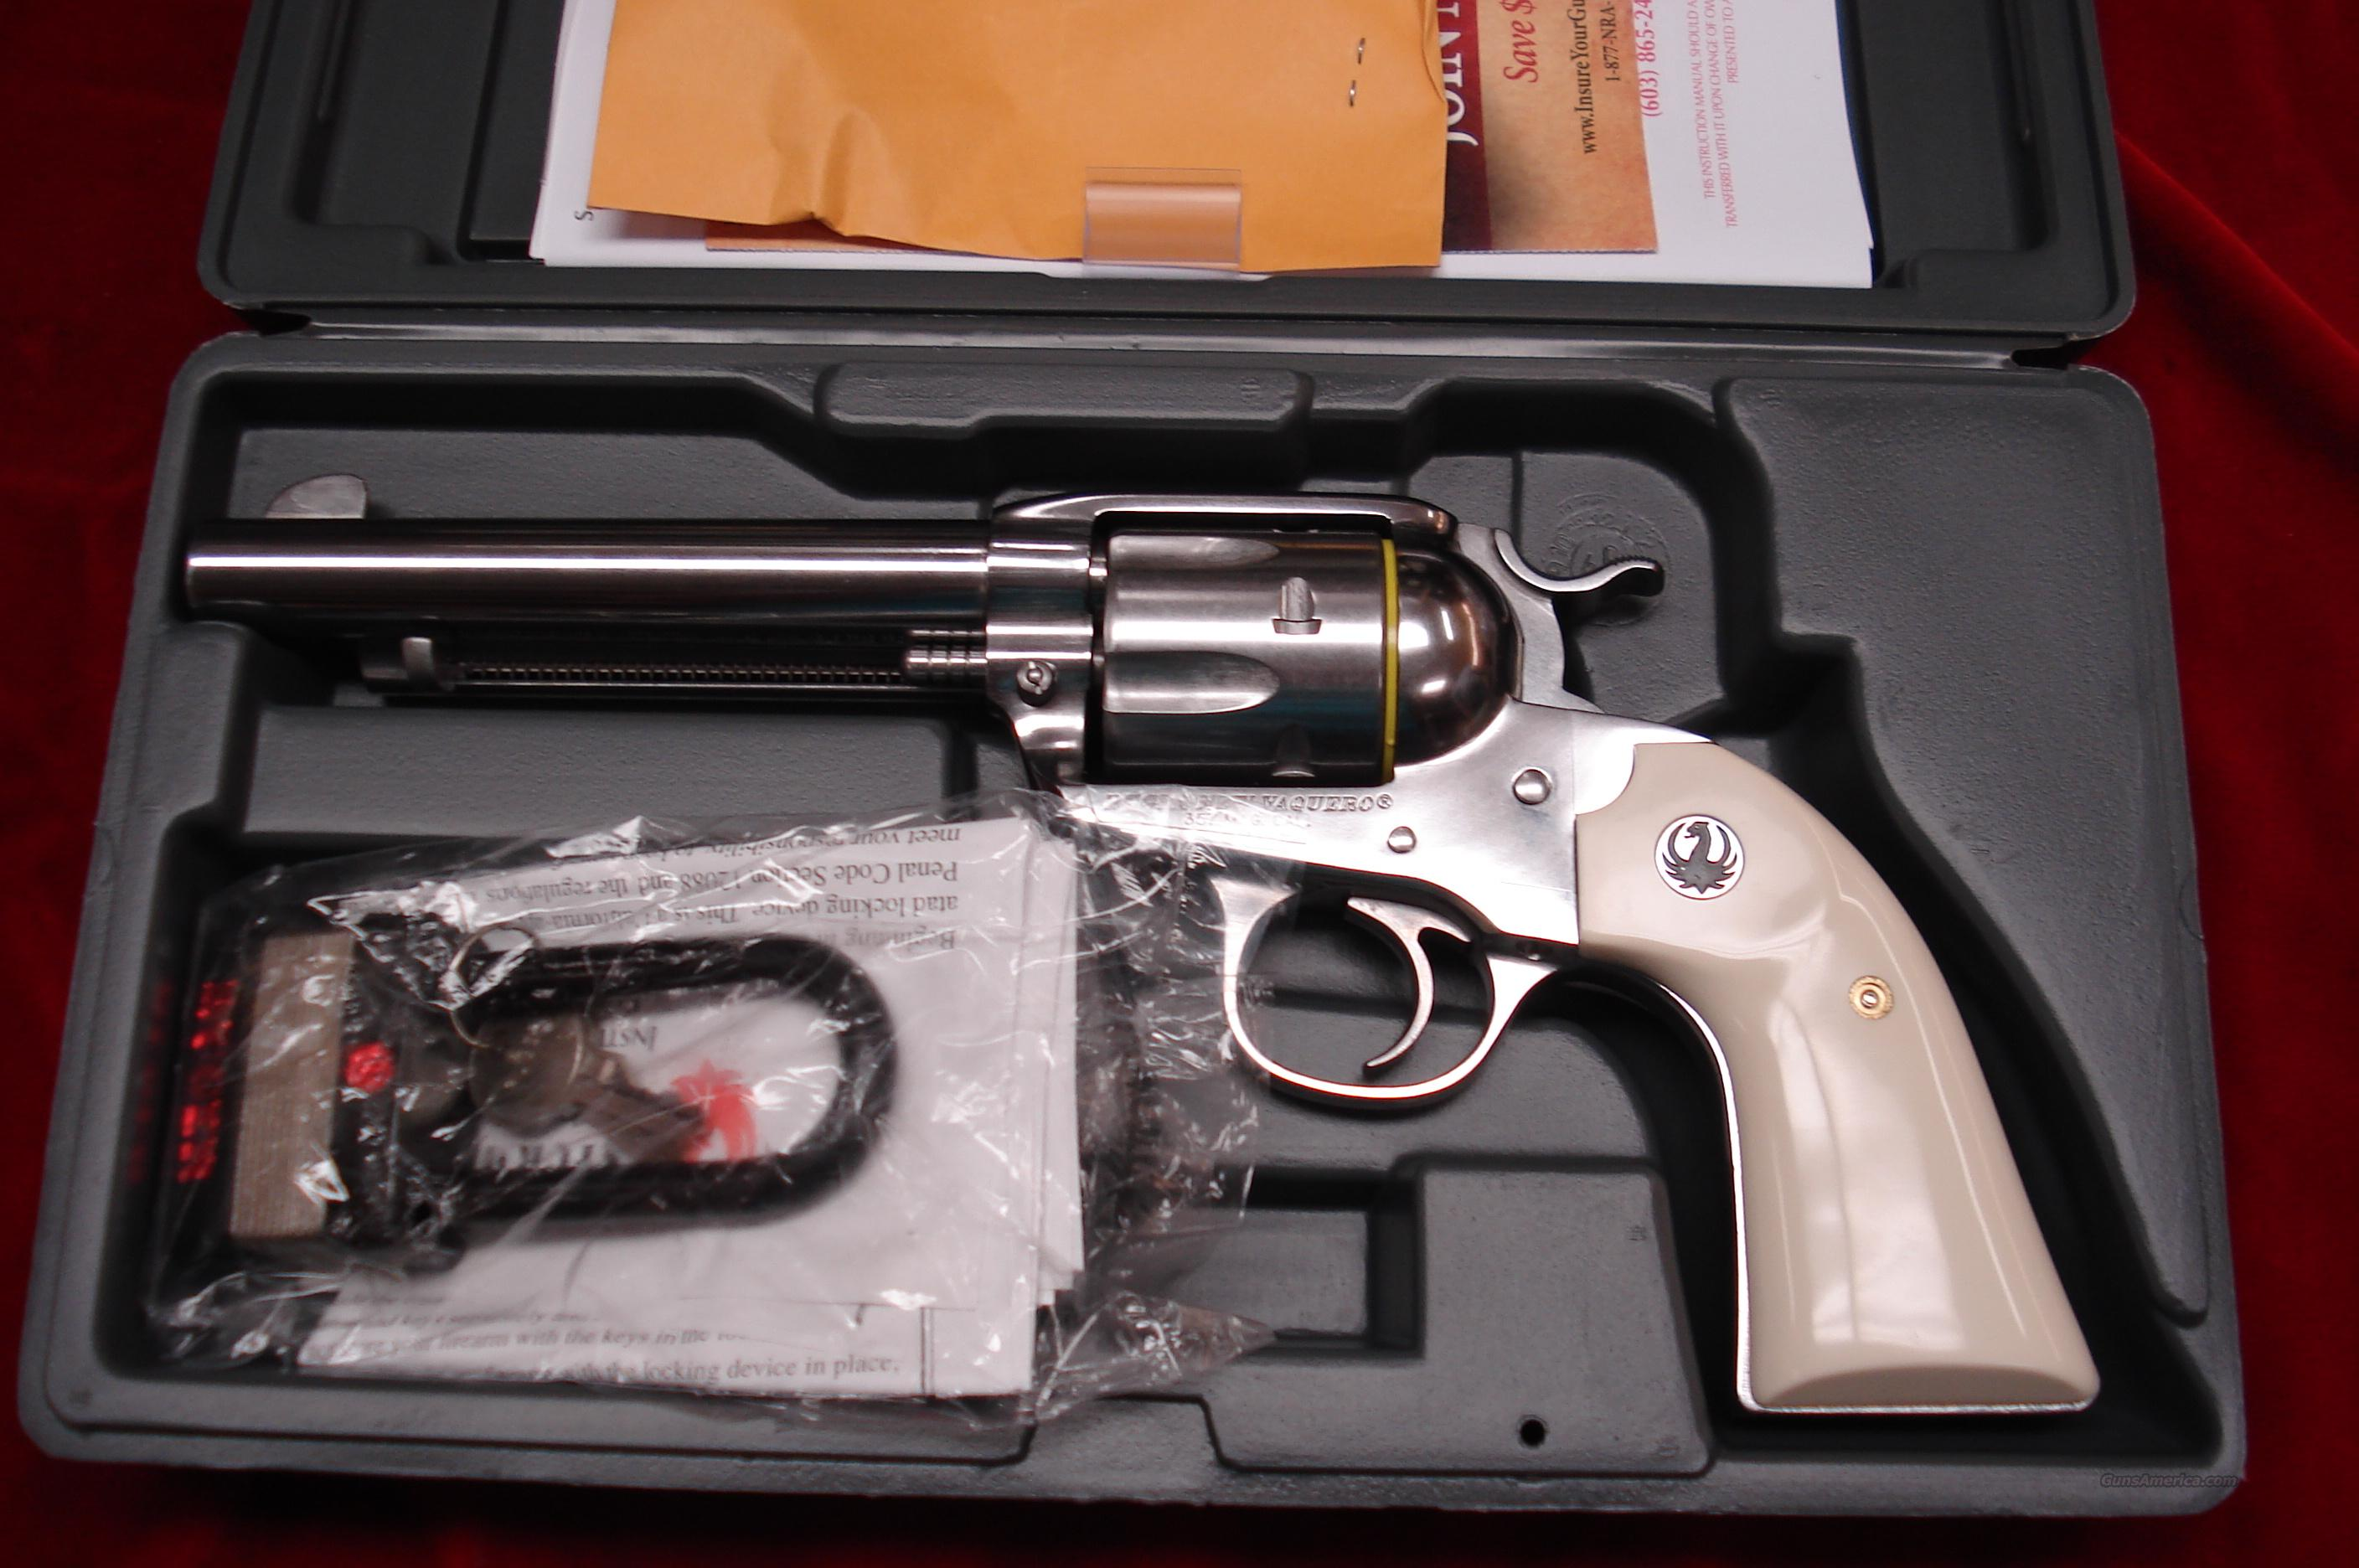 RUGER BISLEY VAQUERO 357MAG POLISHED STAINLESS NEW   (KNVRB-35)  Guns > Pistols > Ruger Single Action Revolvers > Cowboy Action